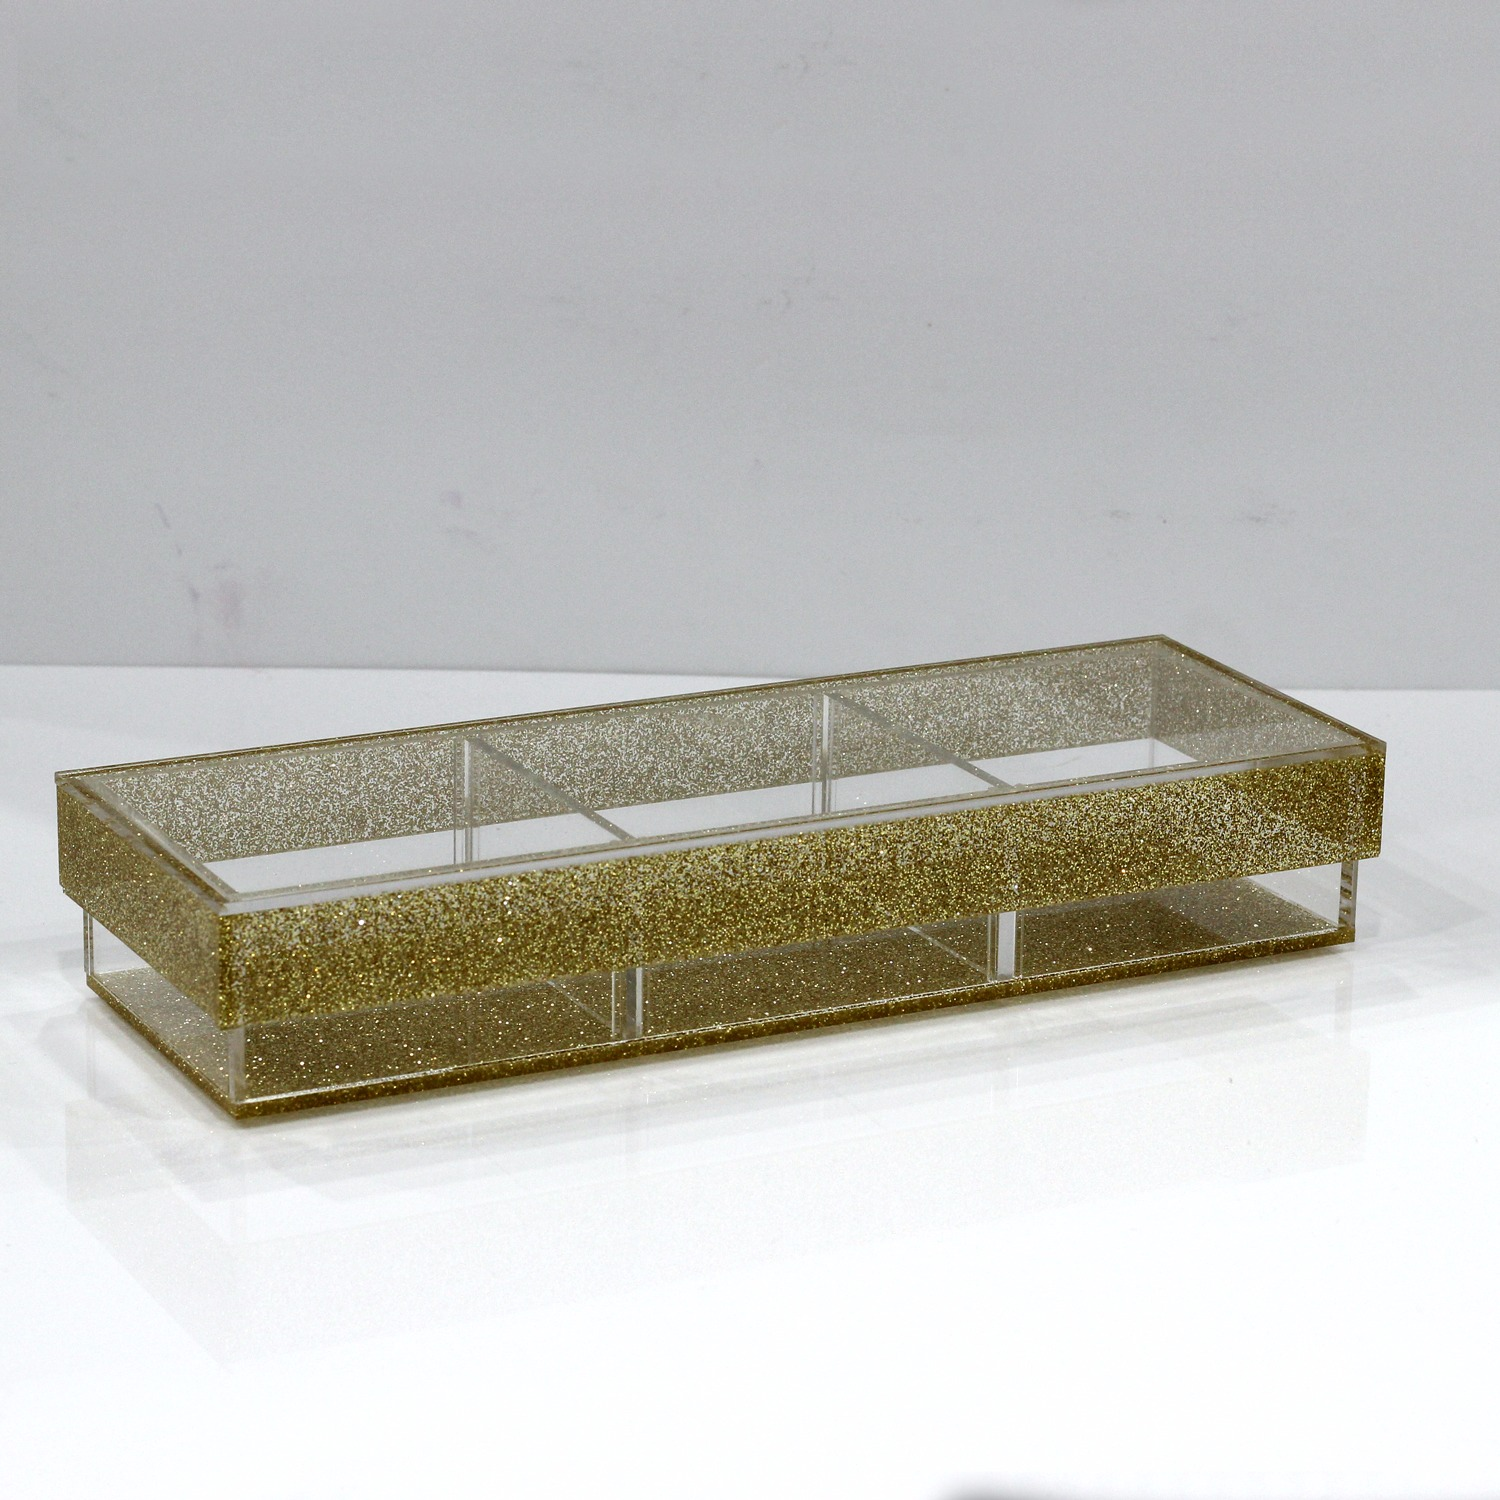 Lucite Divider Sectional Tray (3 Medium) CHOOSE A COLOR